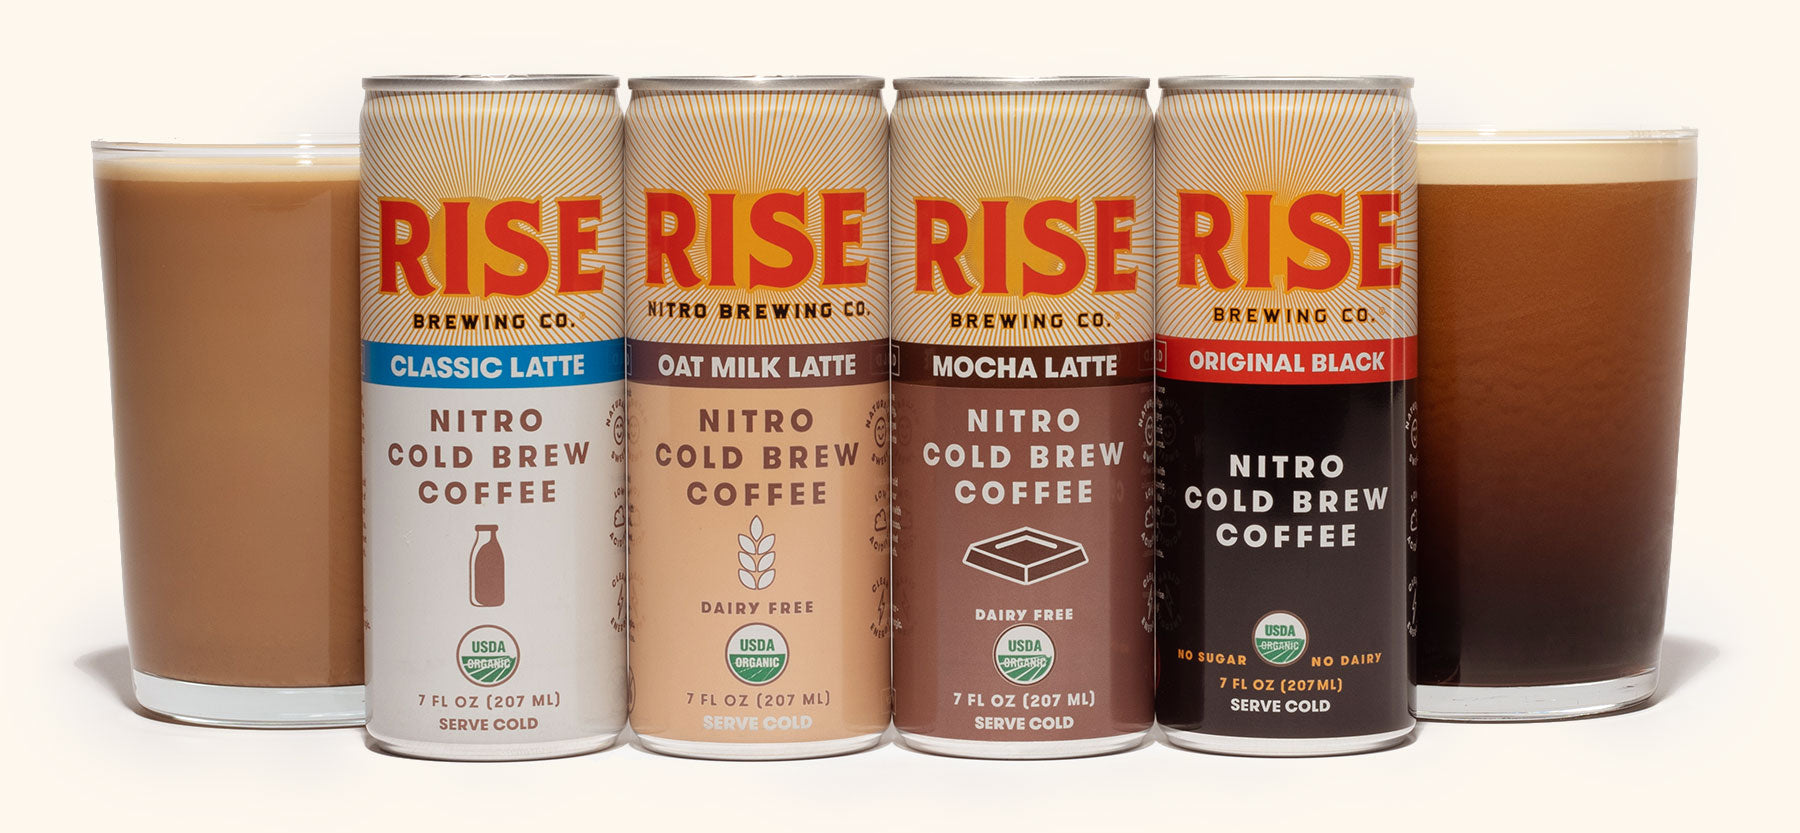 RISE-Nitro-Full-Lineup-Cans